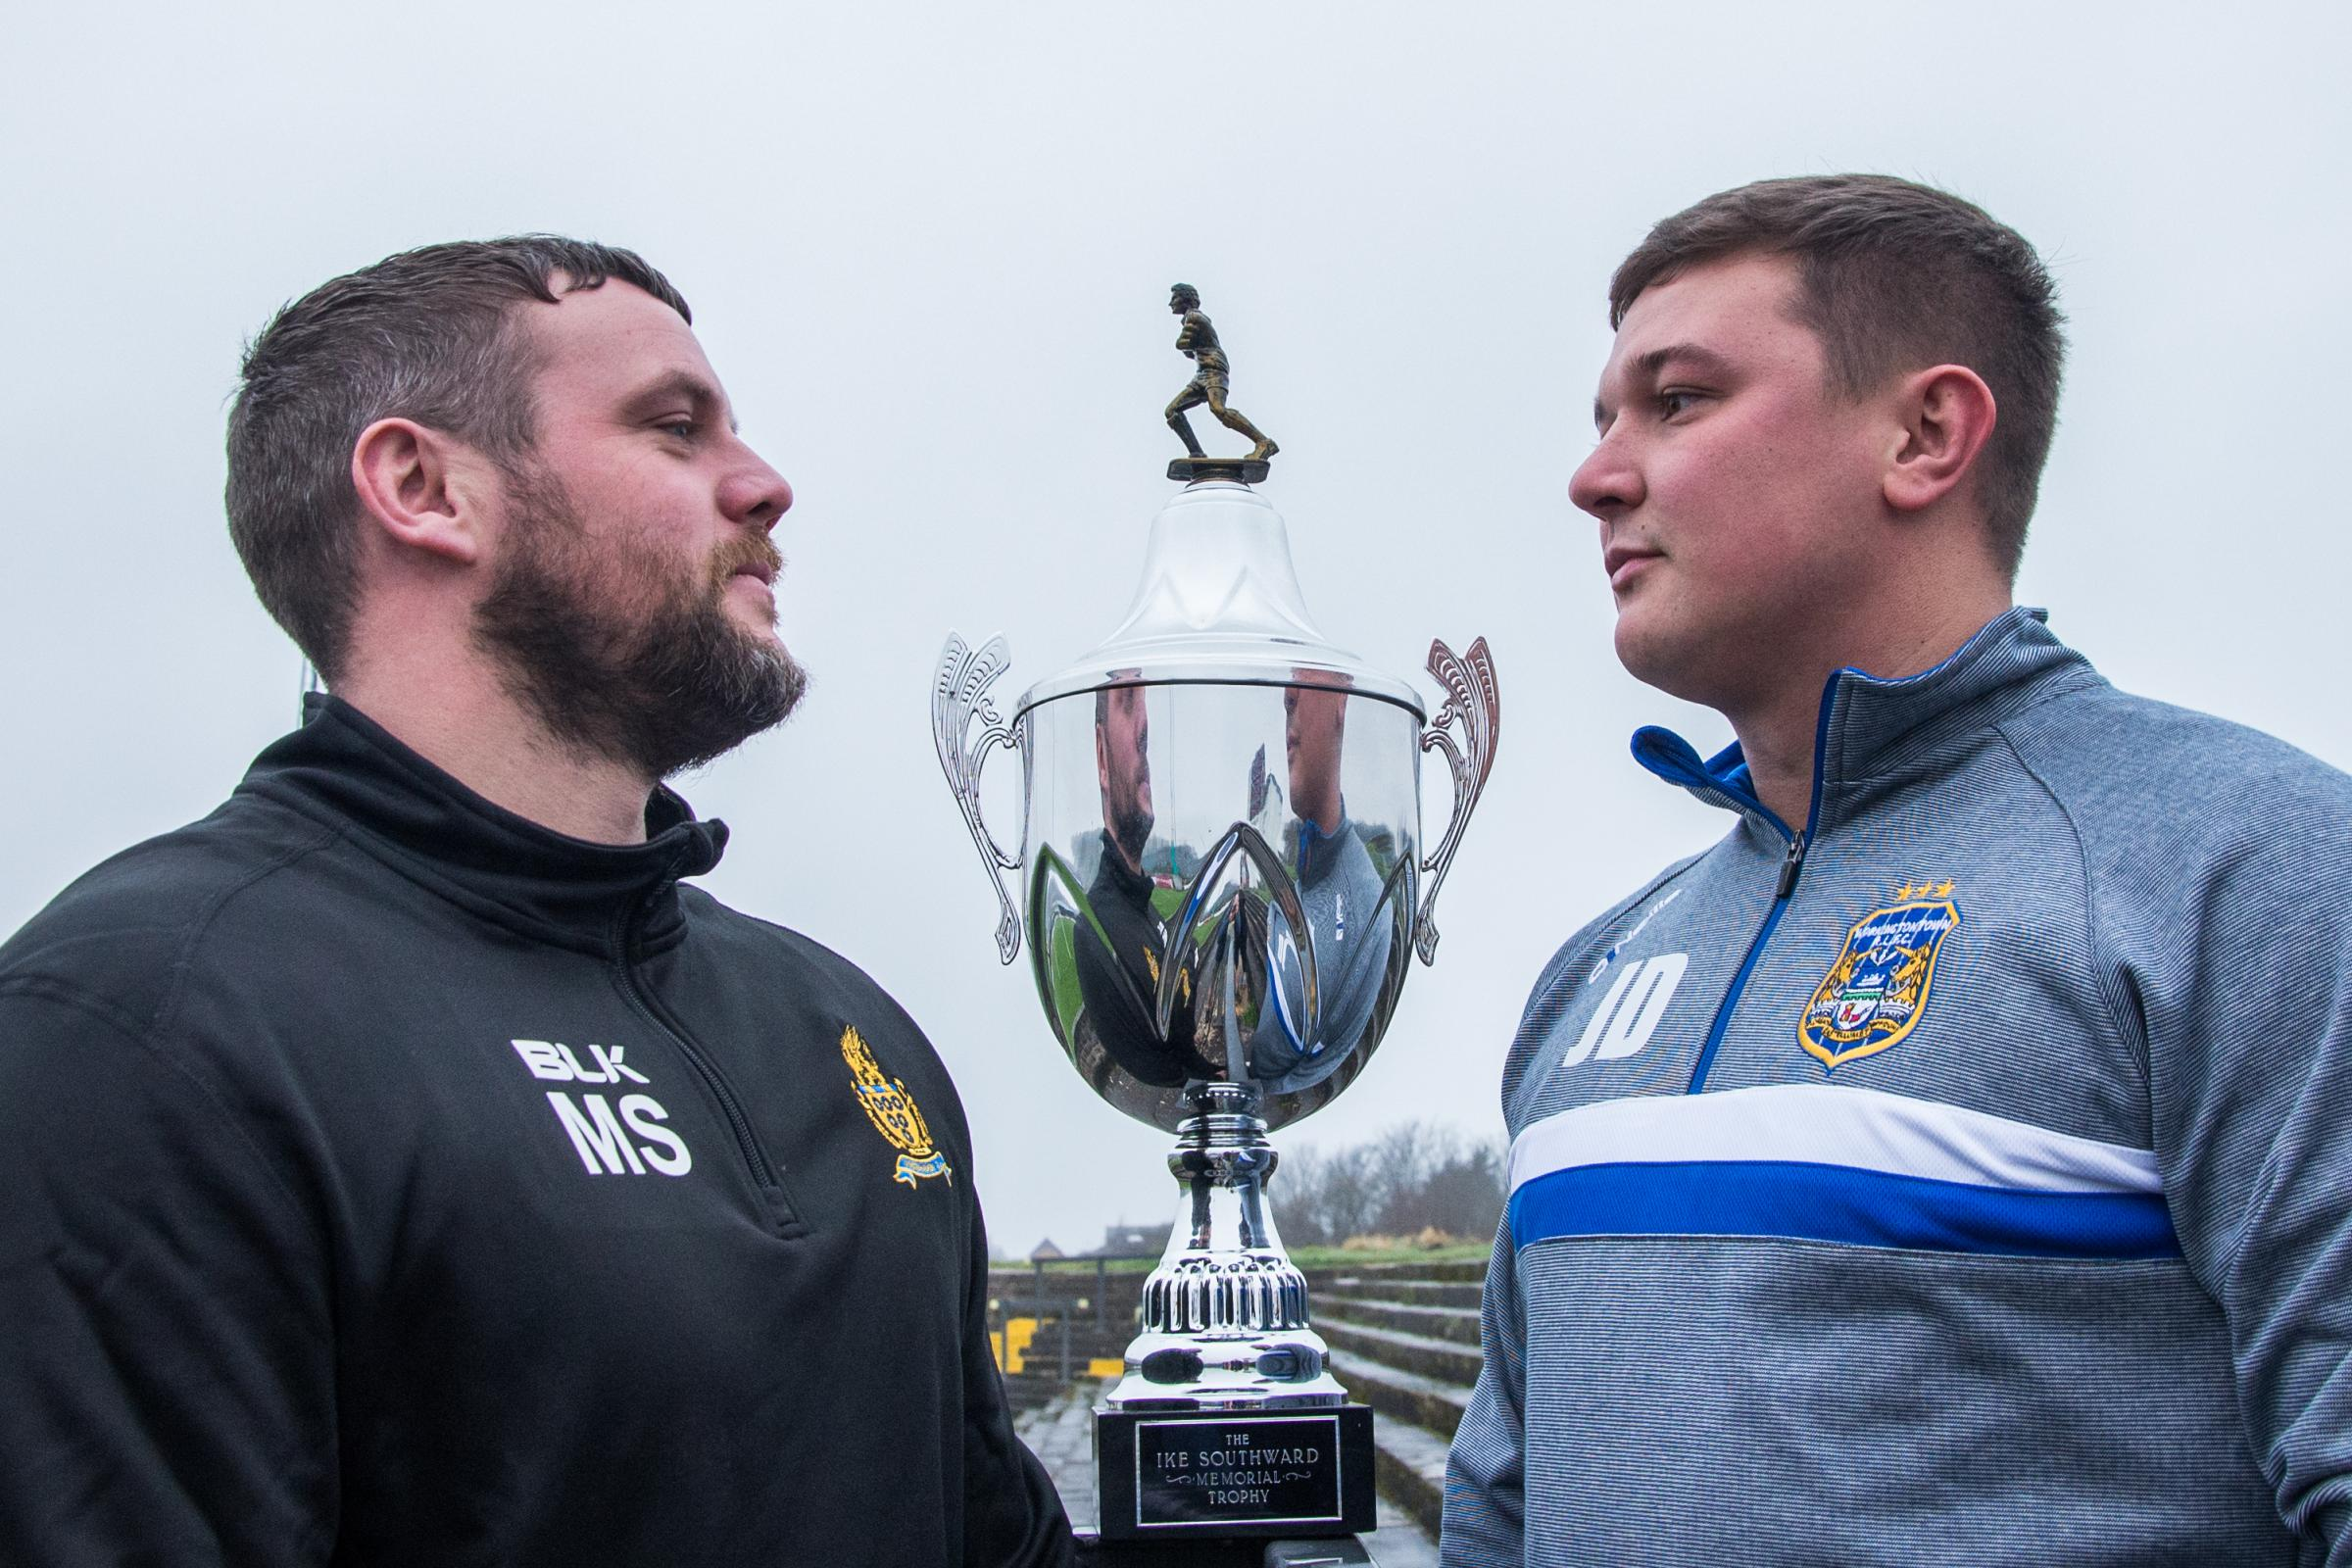 Haven's Marc Shackley and Town's Jamie Doran eyeball each other over the Ike Southward Memorial Trophy that the two teams play for on Sunday					Picture: Gary McKeating